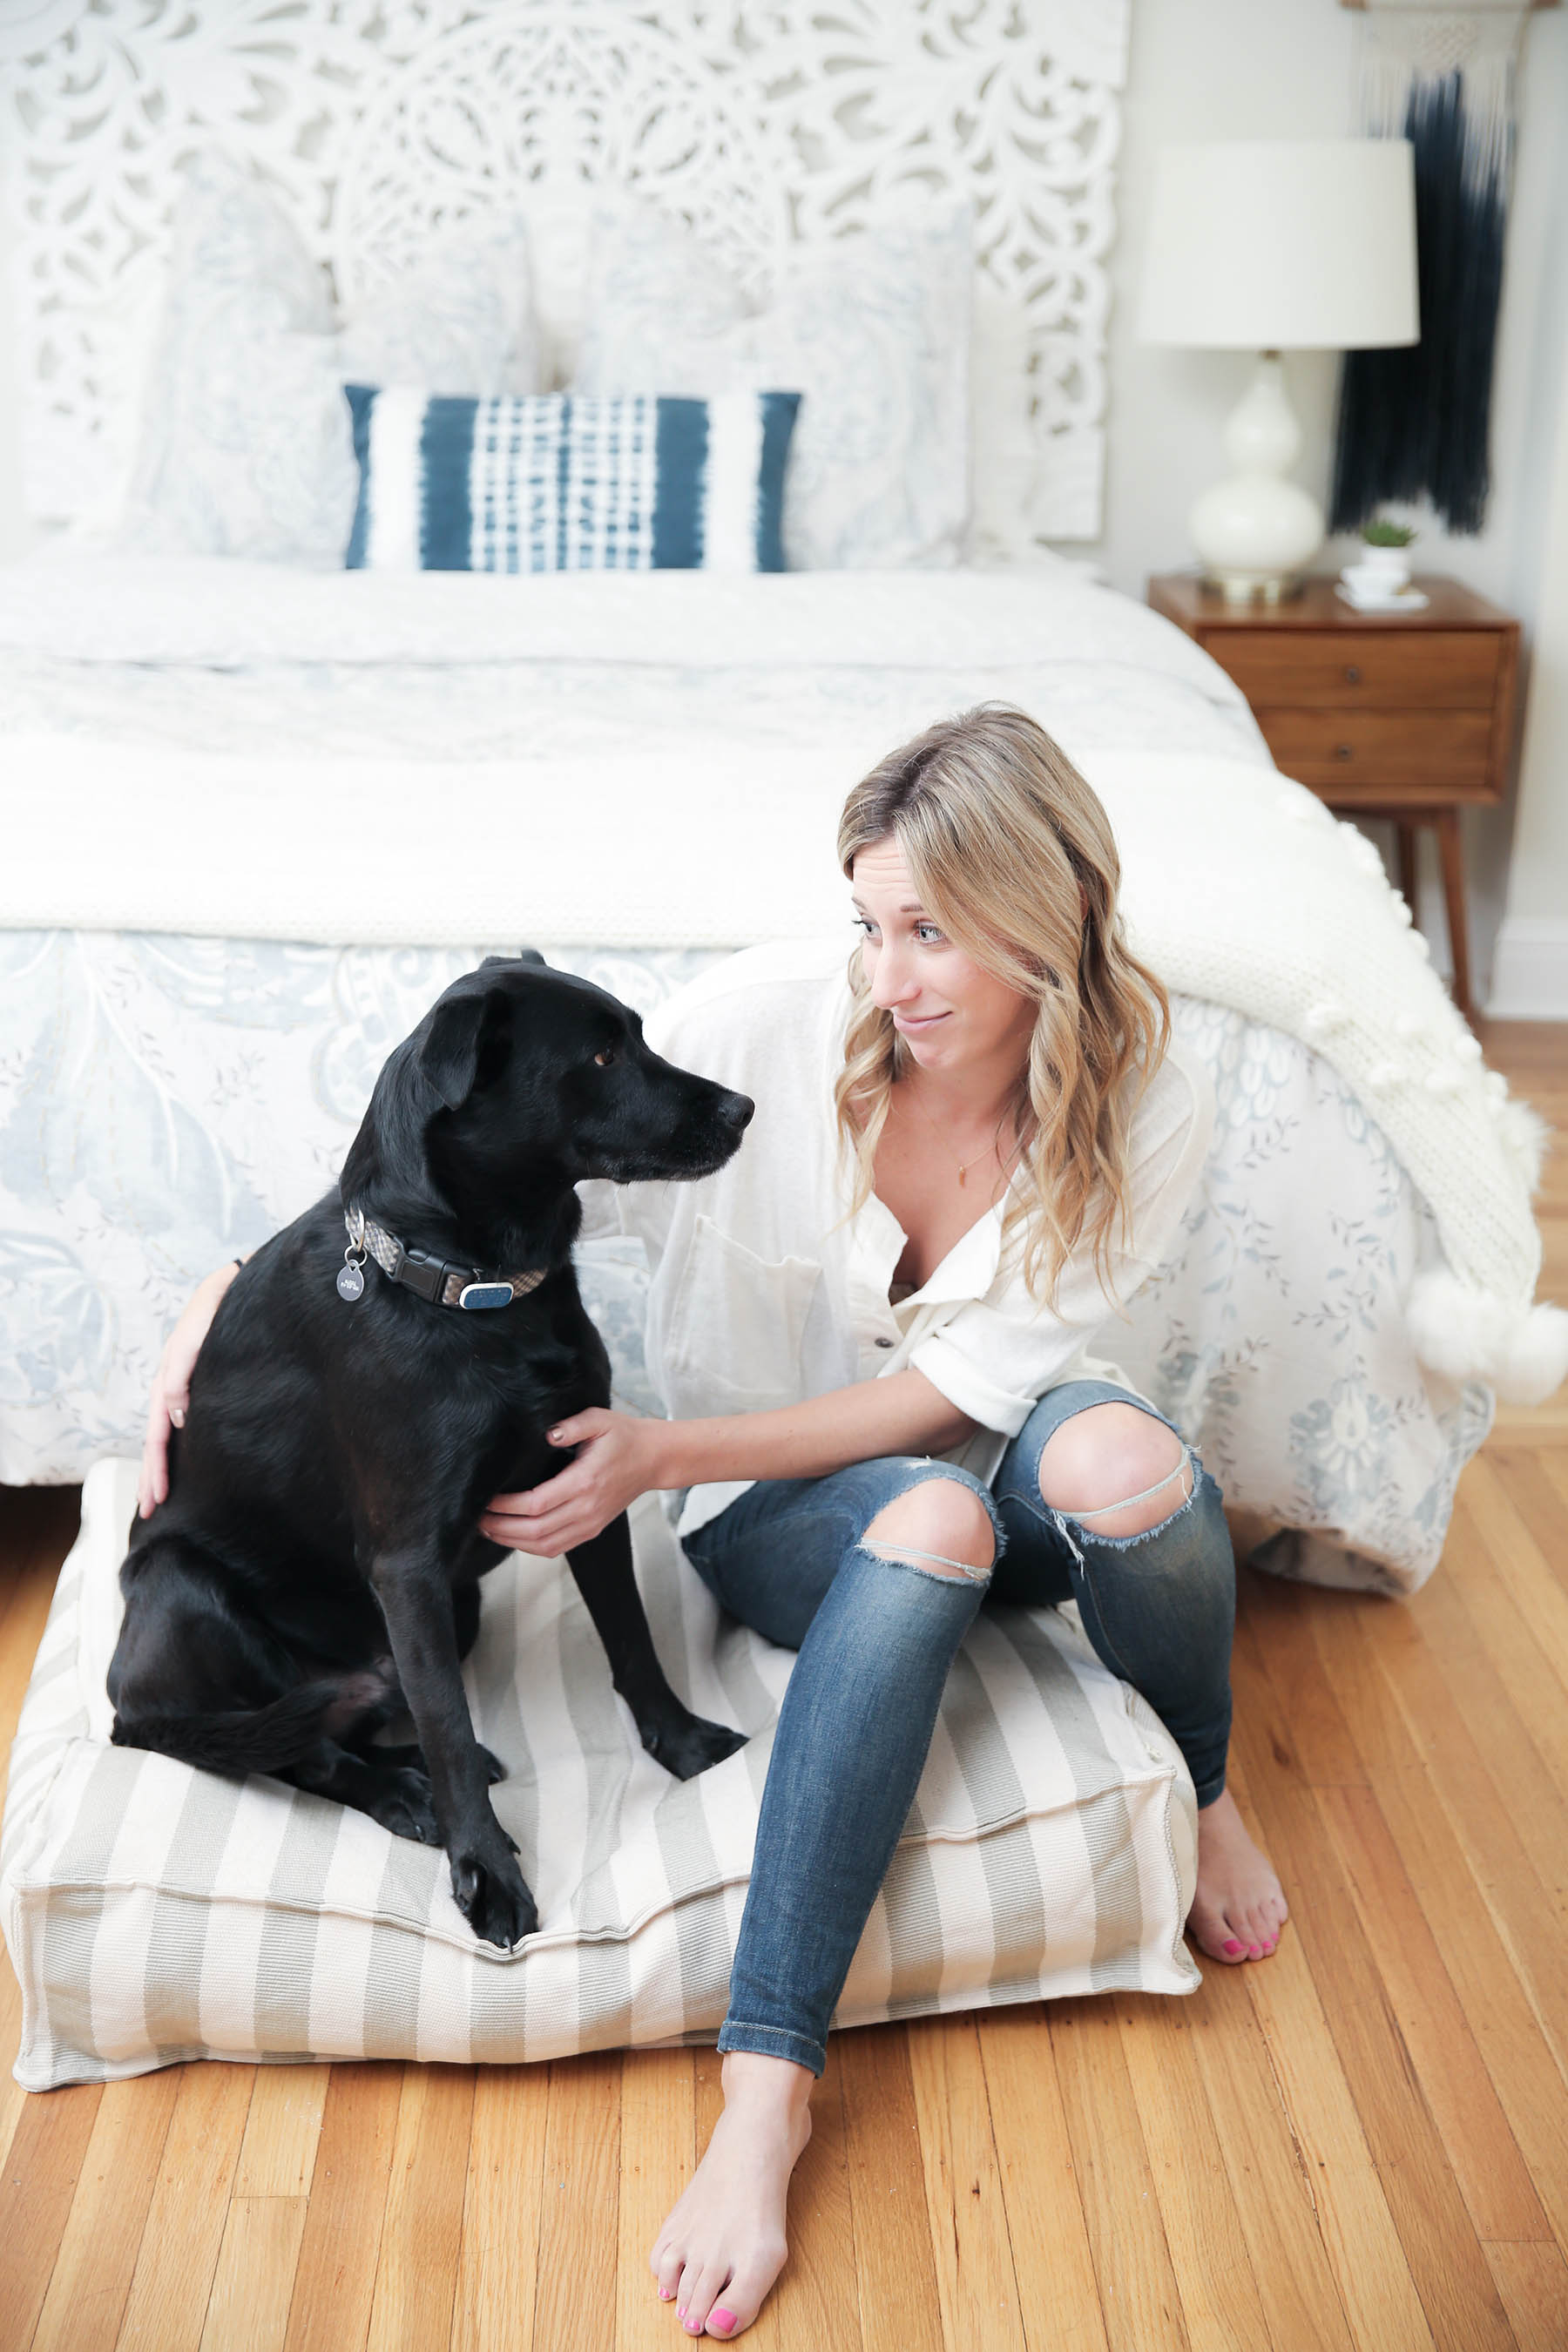 Amanda Holstein with her black lab dog Auggie in stylish boho bedroom